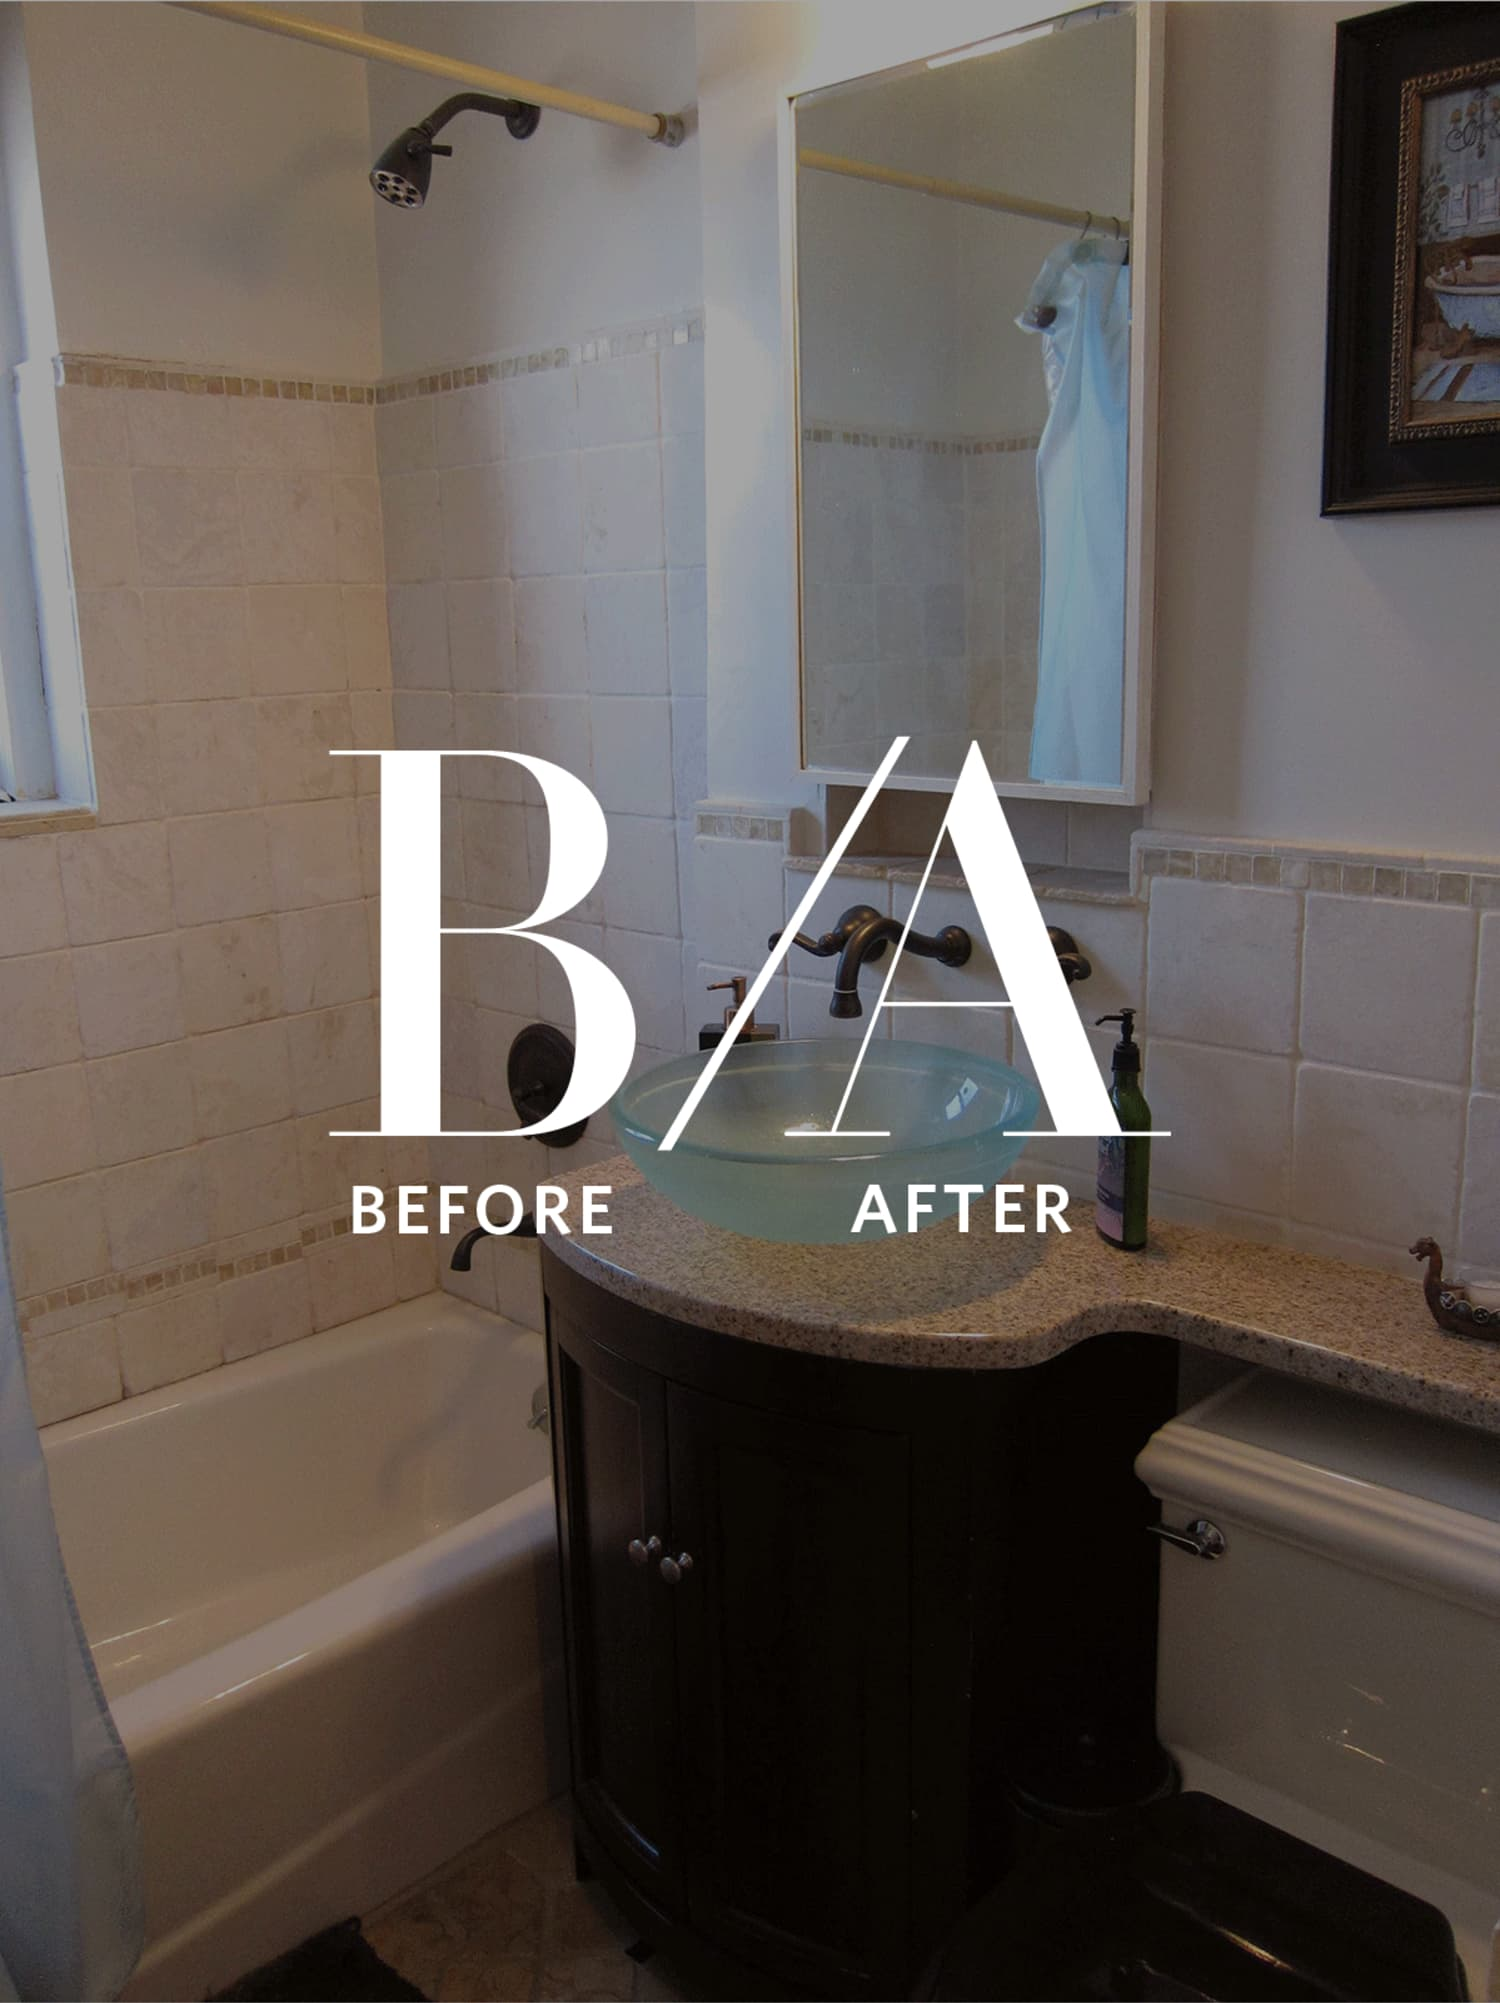 Before & After: A Musty, Dated Bathroom Turns Around